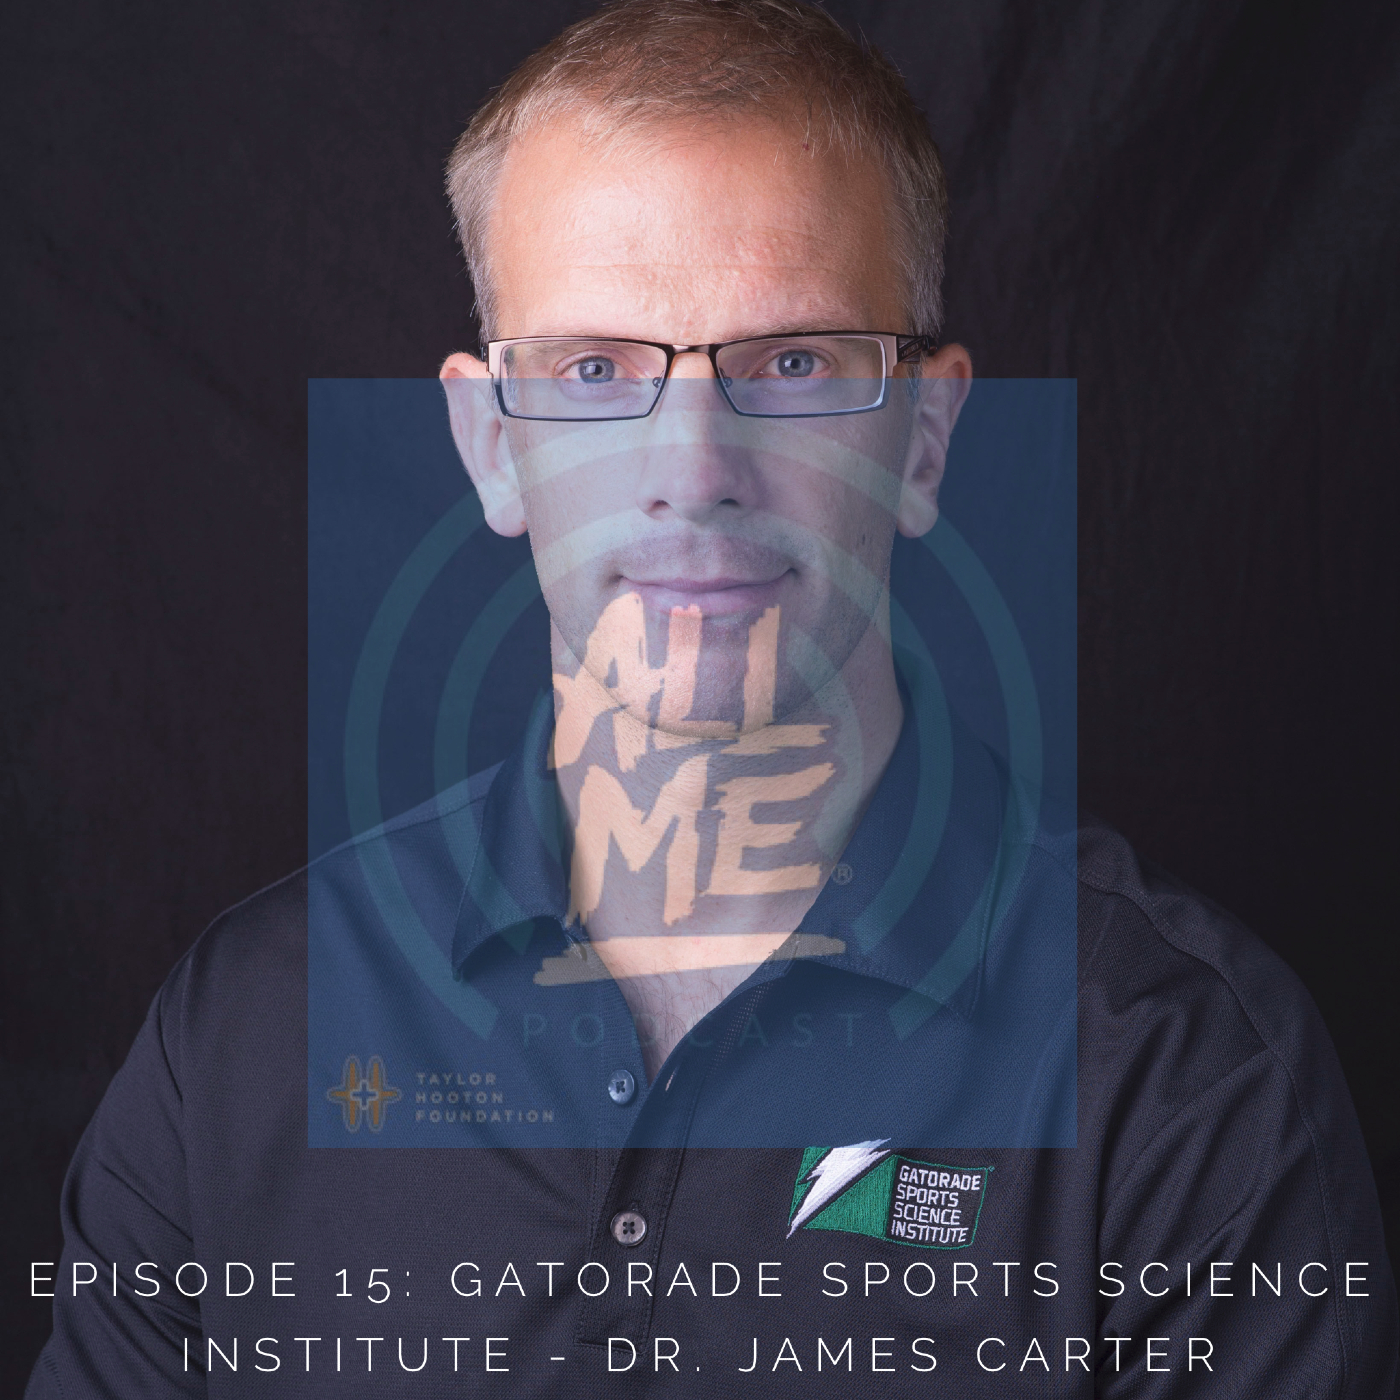 Episode 15: Gatorade Sports Science Institute - Dr. James Carter